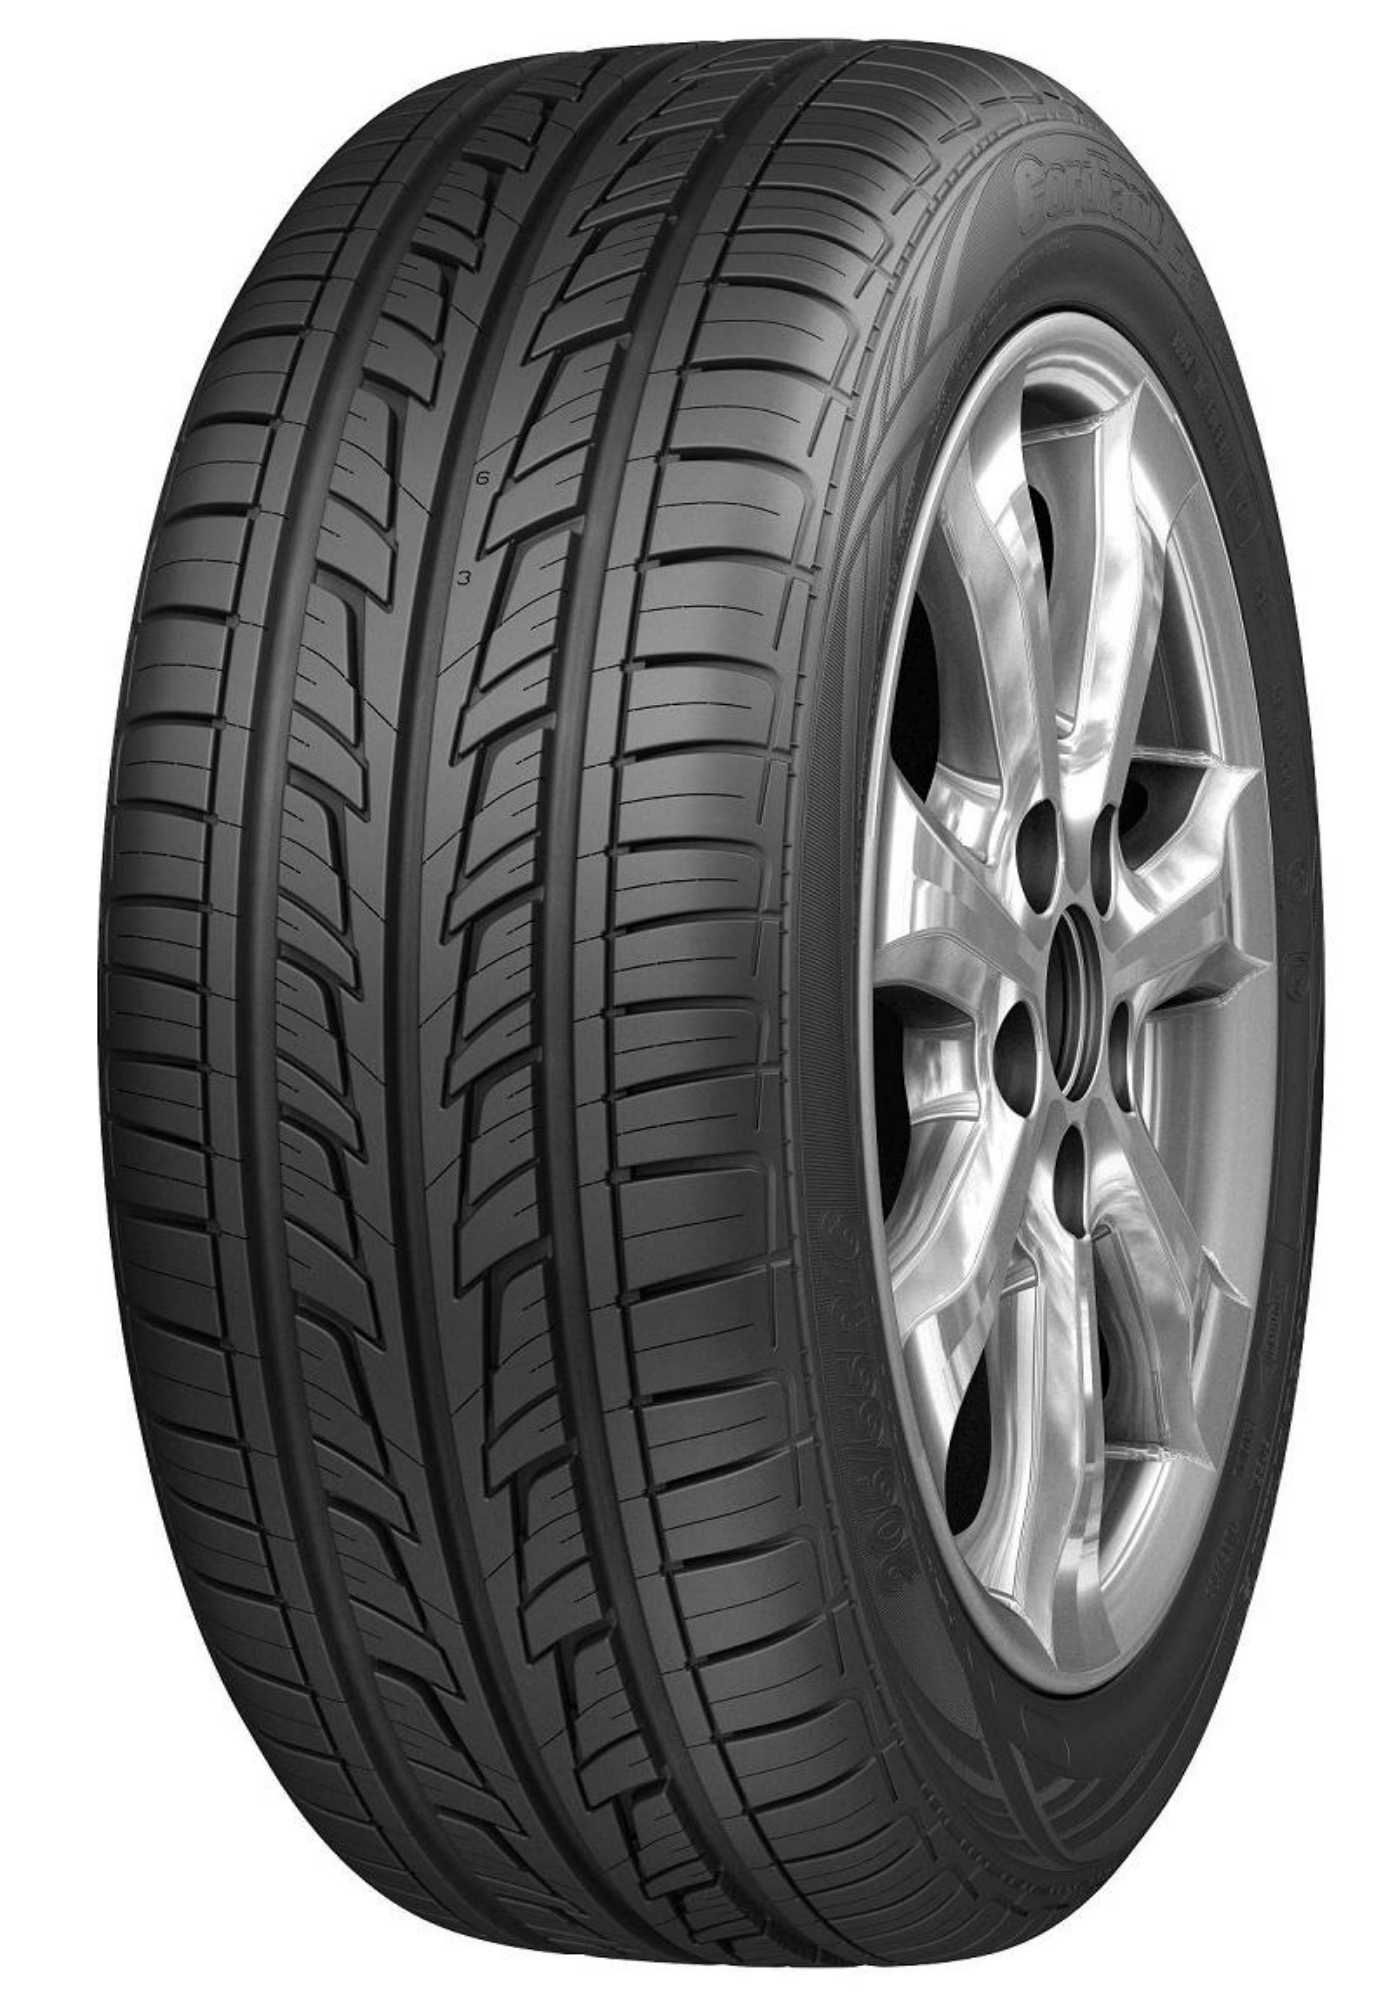 летние шины Cordiant Road Runner 185/65 R14 86/H